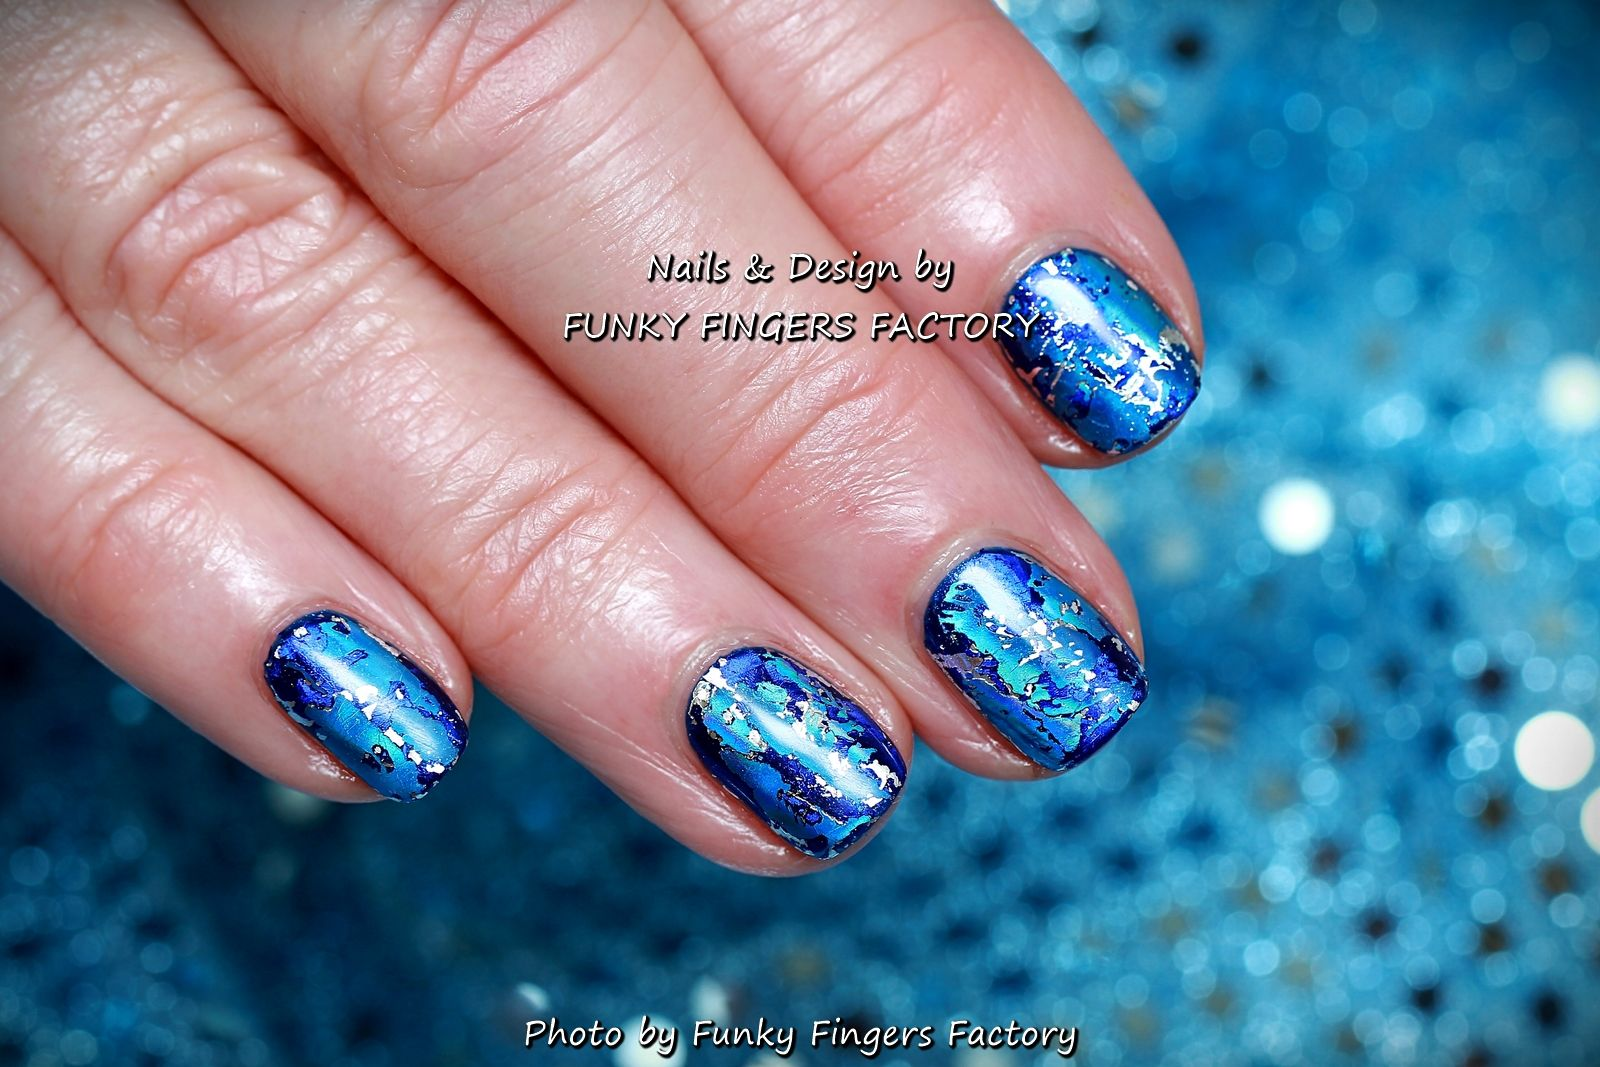 Gelish Blue Ice nails by FUNKY FINGERS FACTORY